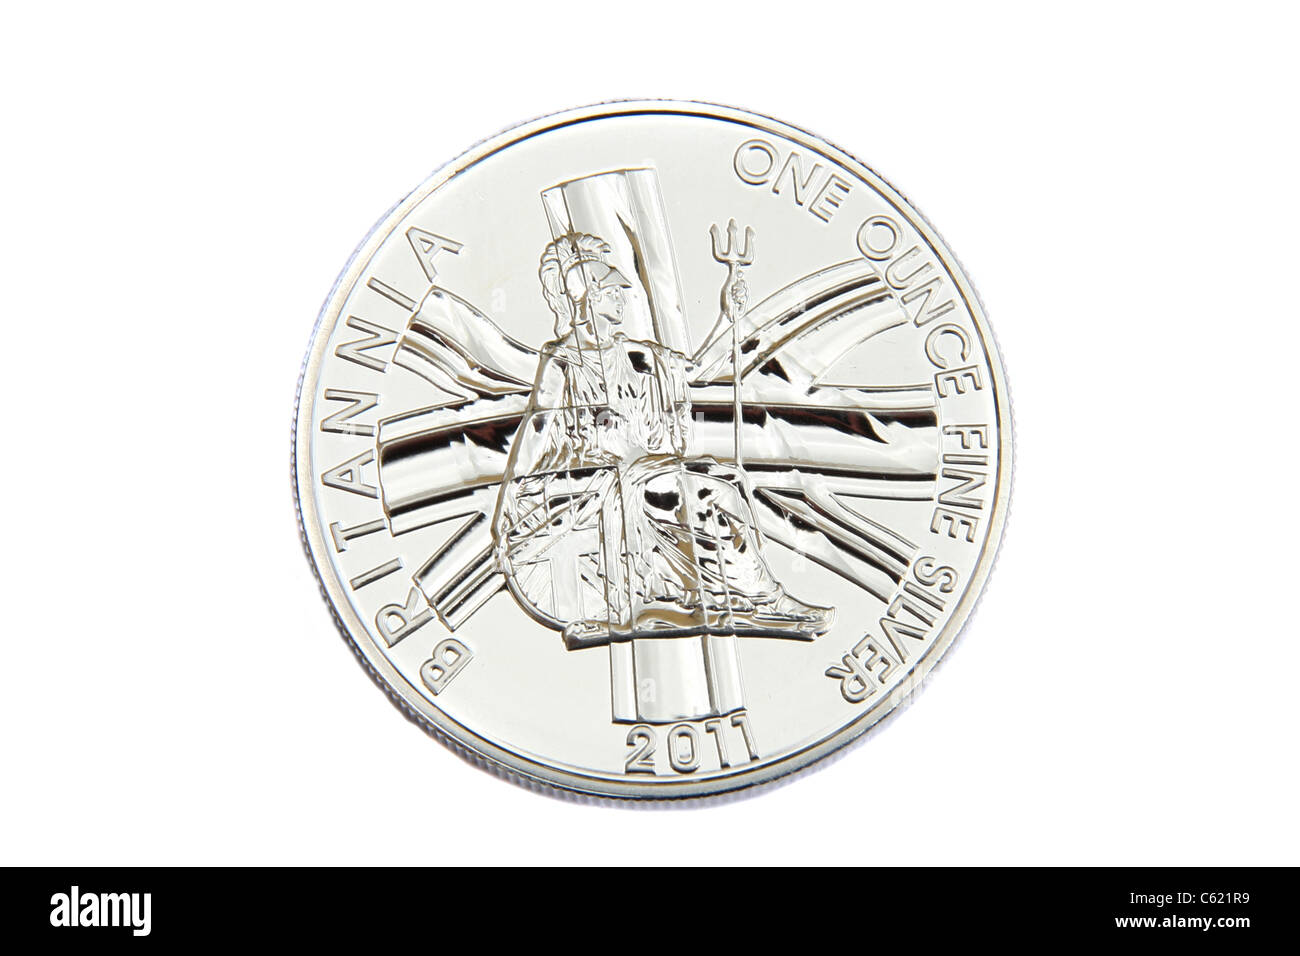 British Silver, a one ounce silver coin. - Stock Image